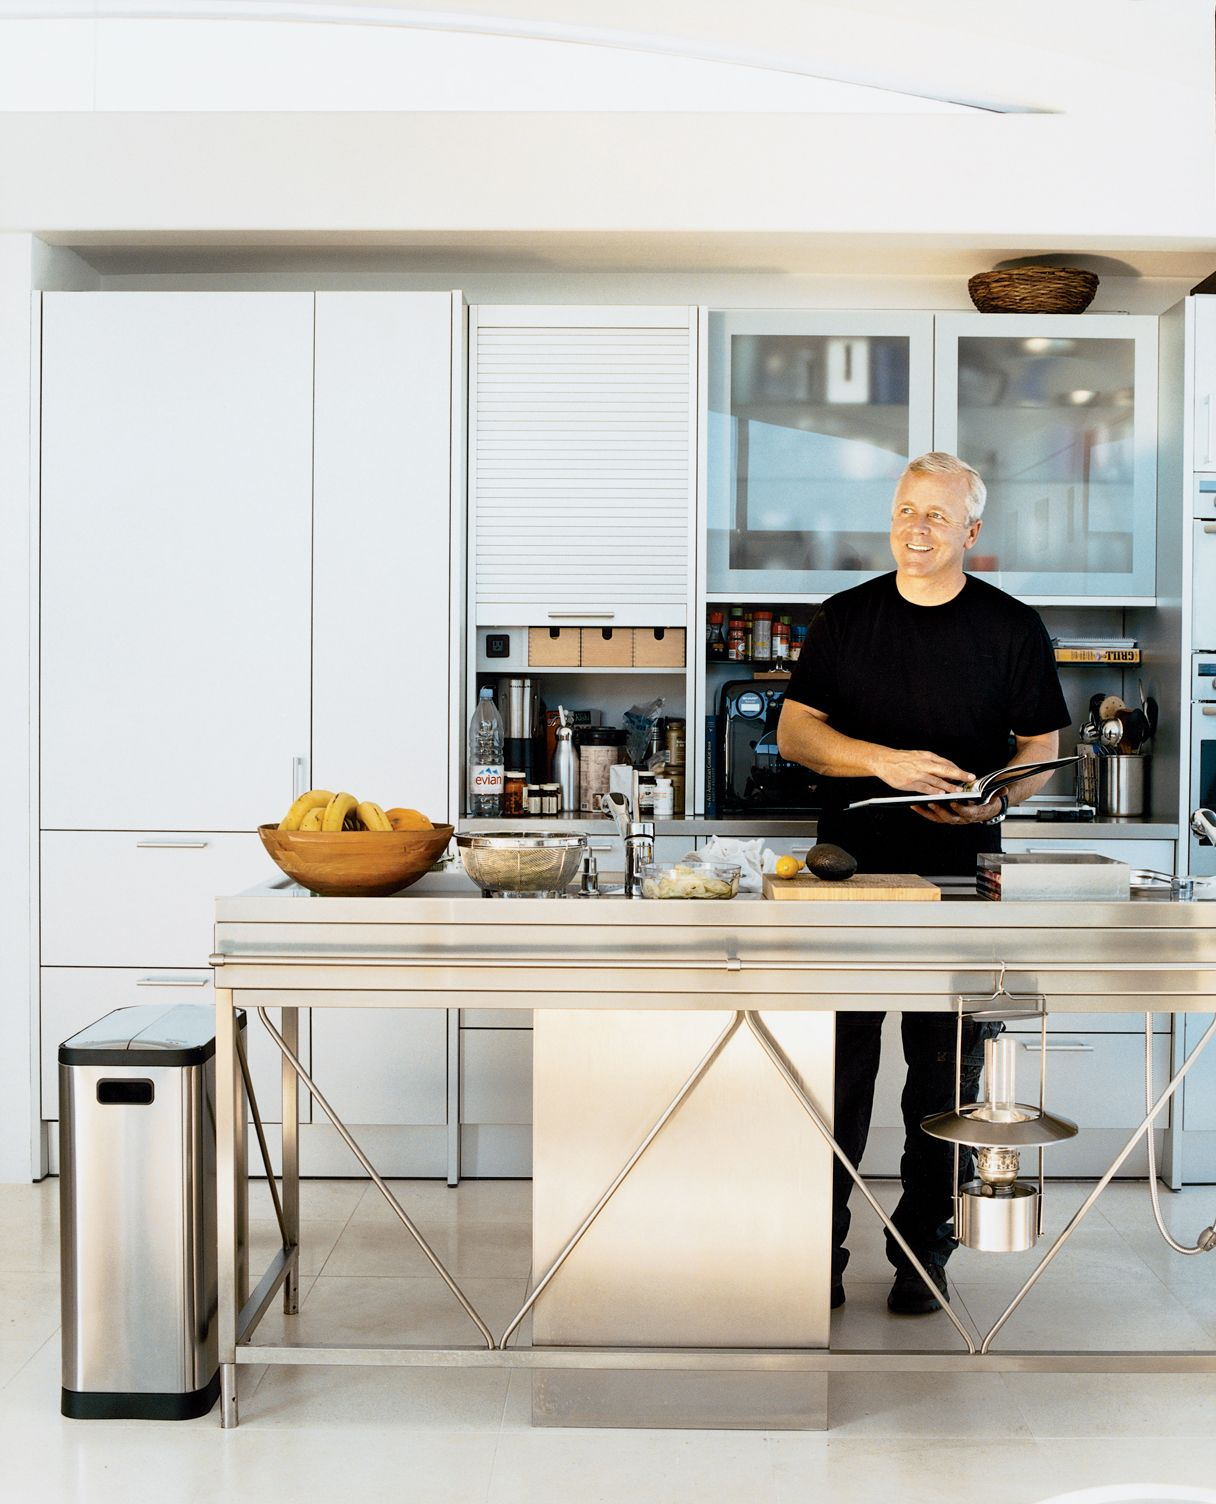 Designer John Picard Isn't Afraid Of Getting His Hands Dirty In Amazing How To Become A Kitchen Designer 2018